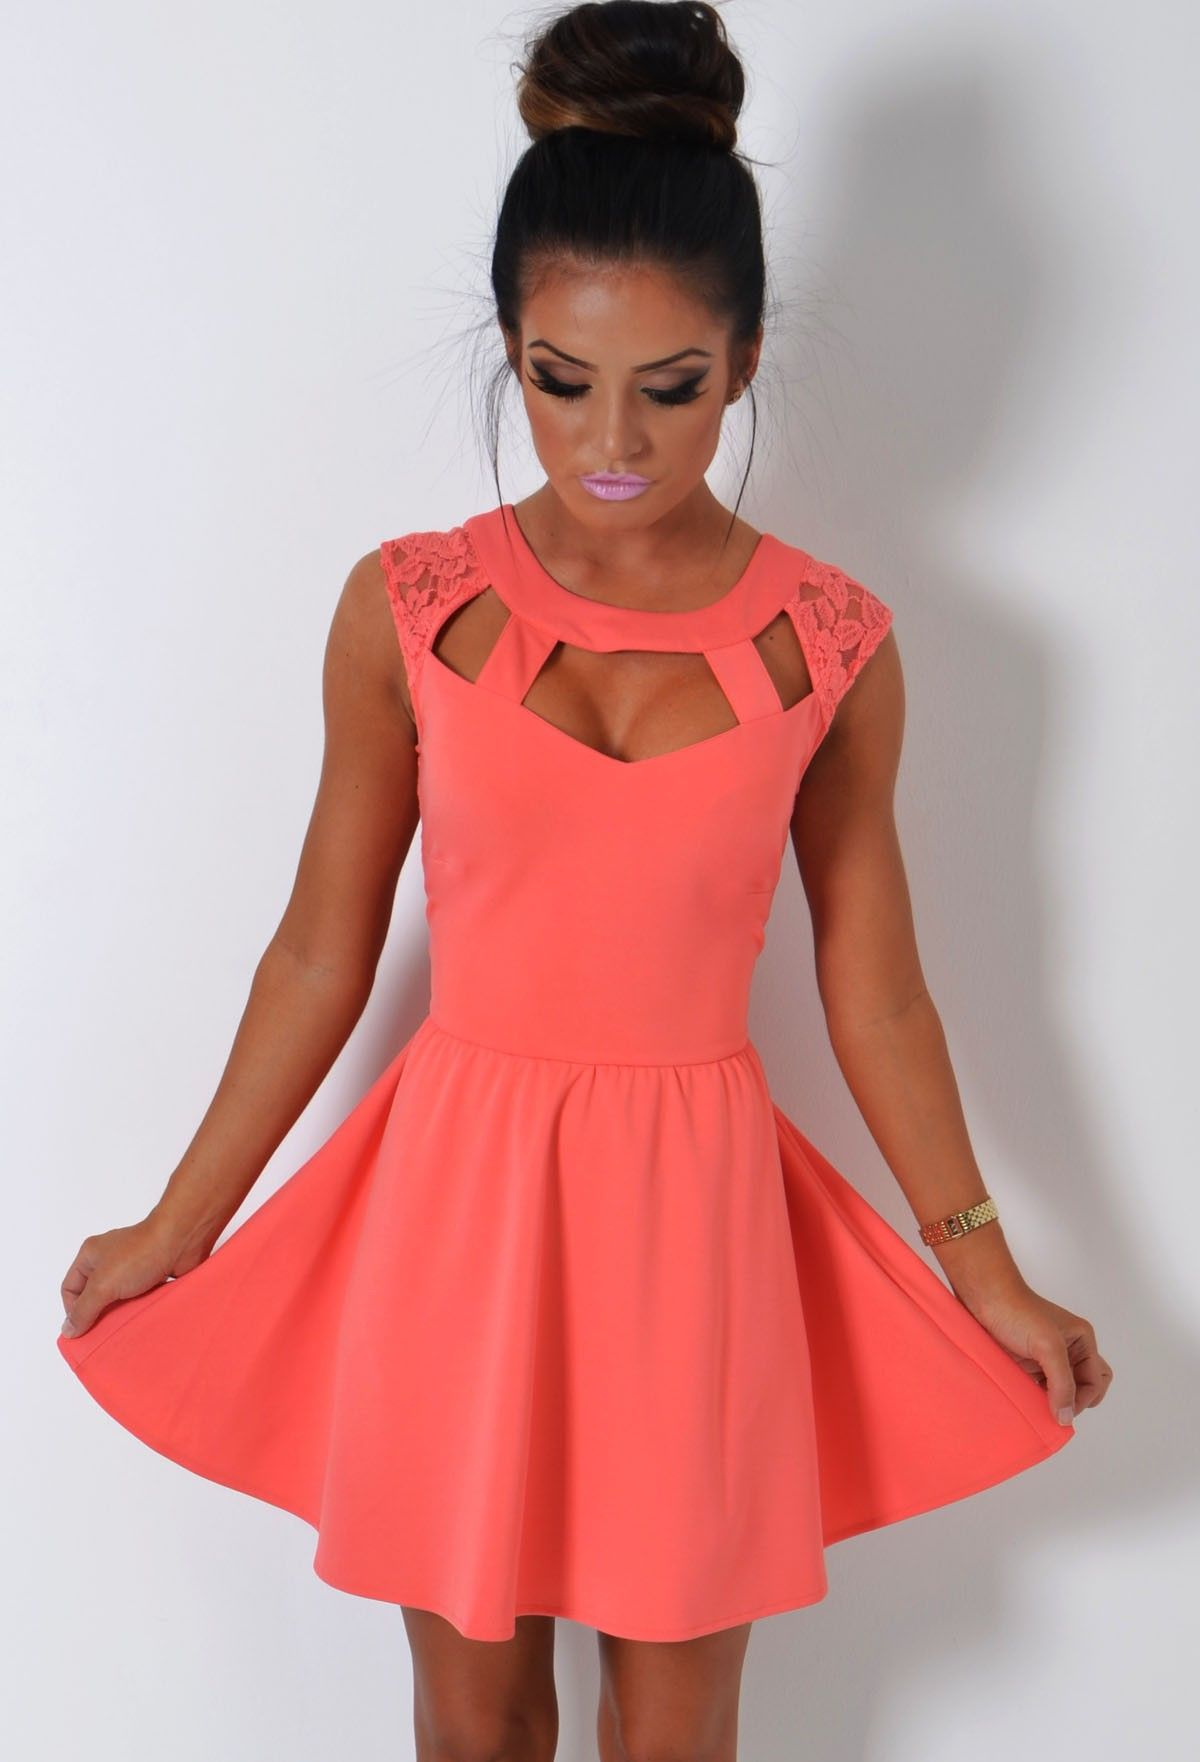 Closet triangle cut out back dress - Trouble Maker Coral Cage Cut Out Lace Skater Dress